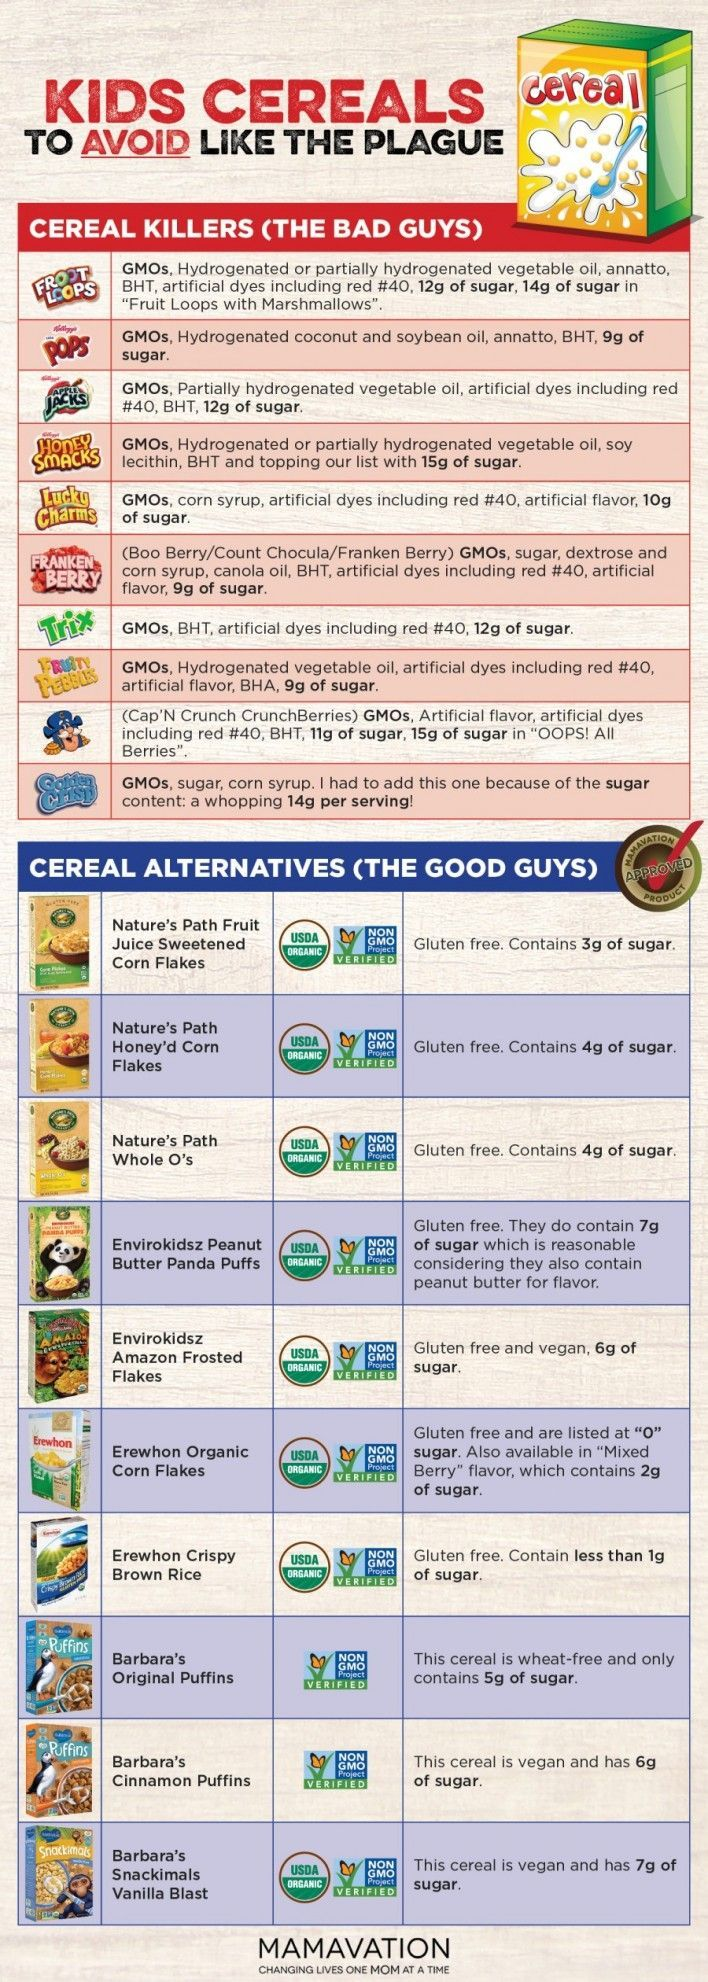 Cereals: which to avoid, which to buy.  I don't buy all the chemical gmo schtick but it never hurts to avoid non natural stuff especially for the kids